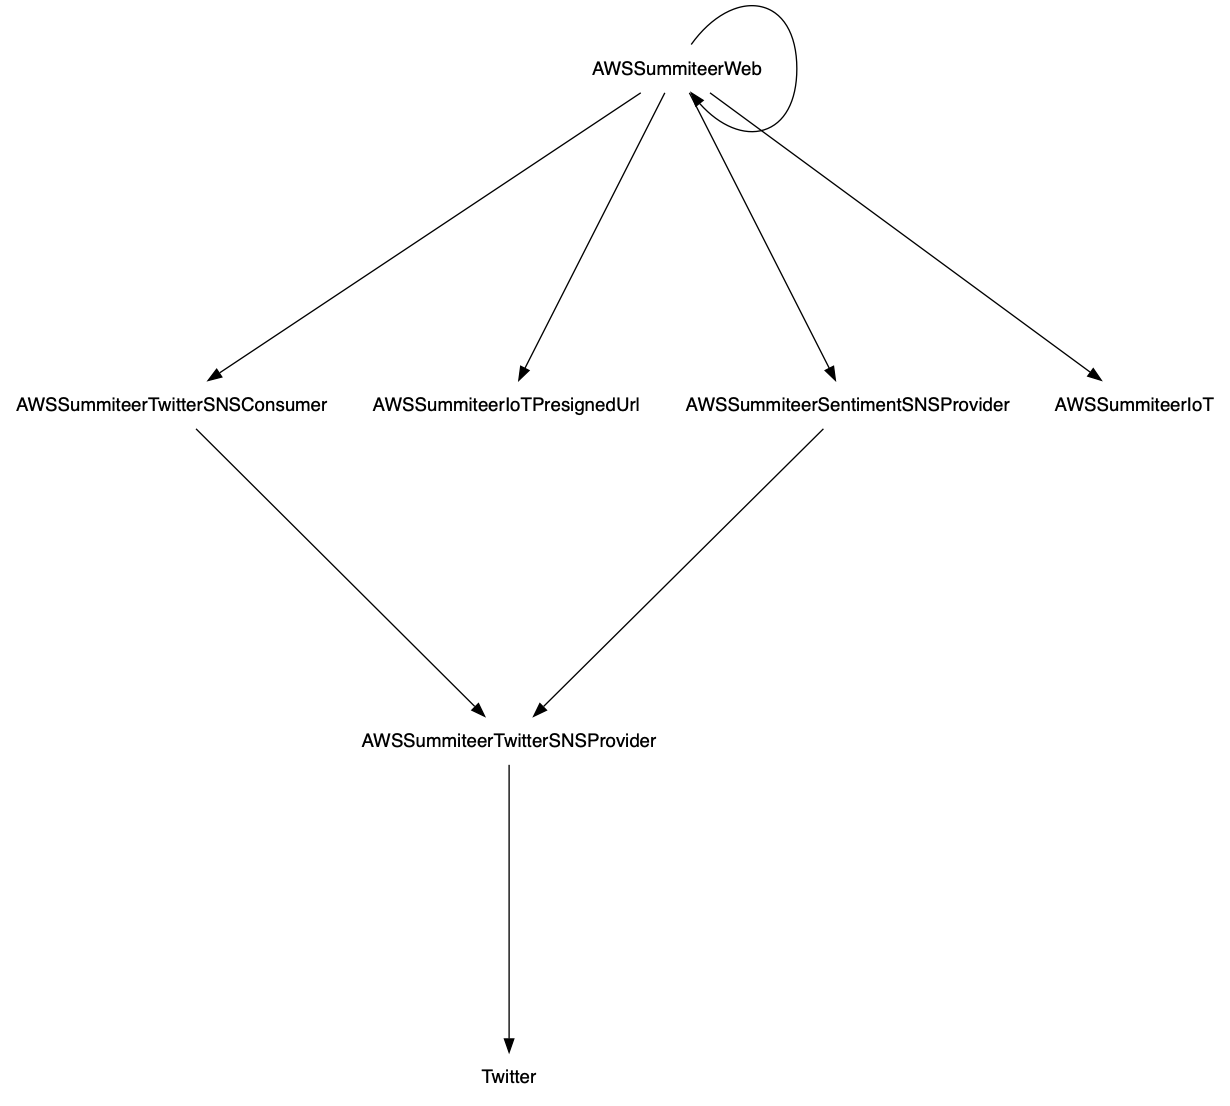 Exporting hierarchical architecture diagrams from Pactflow